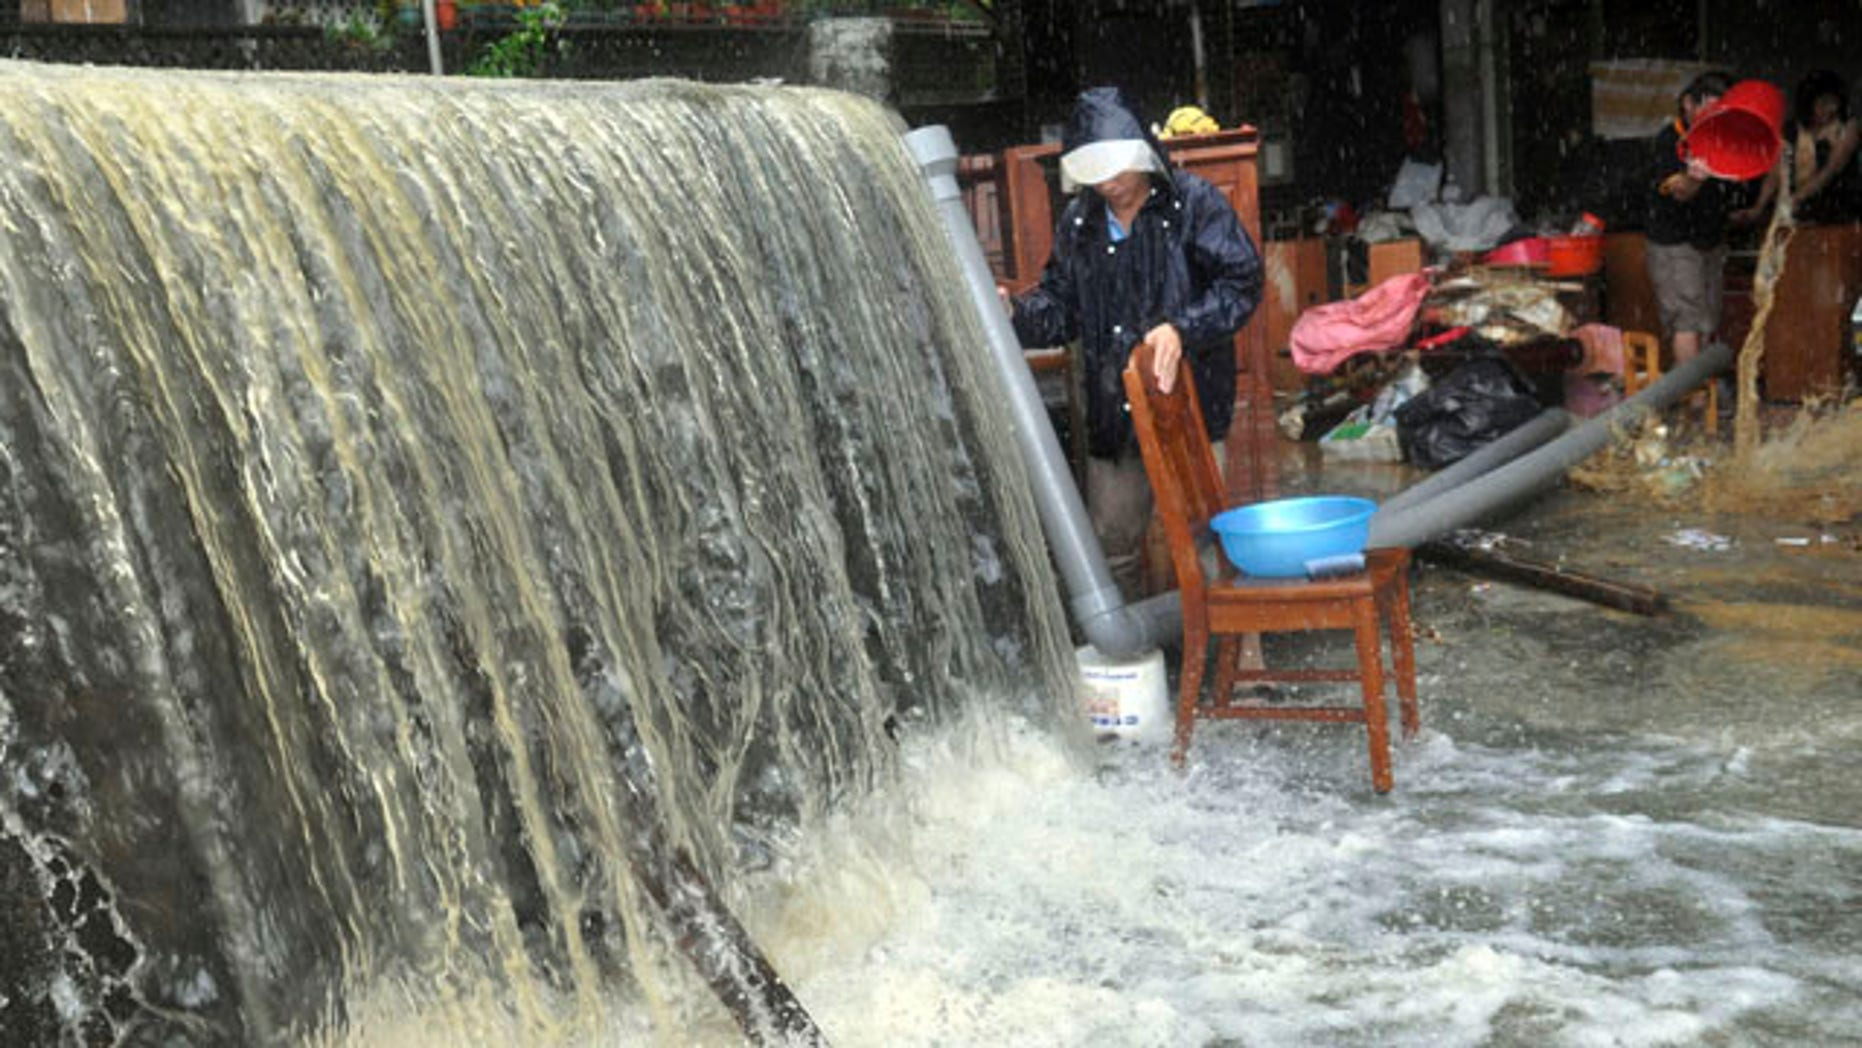 Oct. 22, 2010: Massive water and flood debris caused by rains from passing Typhoon Megi flow through a residential district in Ilan county, north eastern Taiwan.